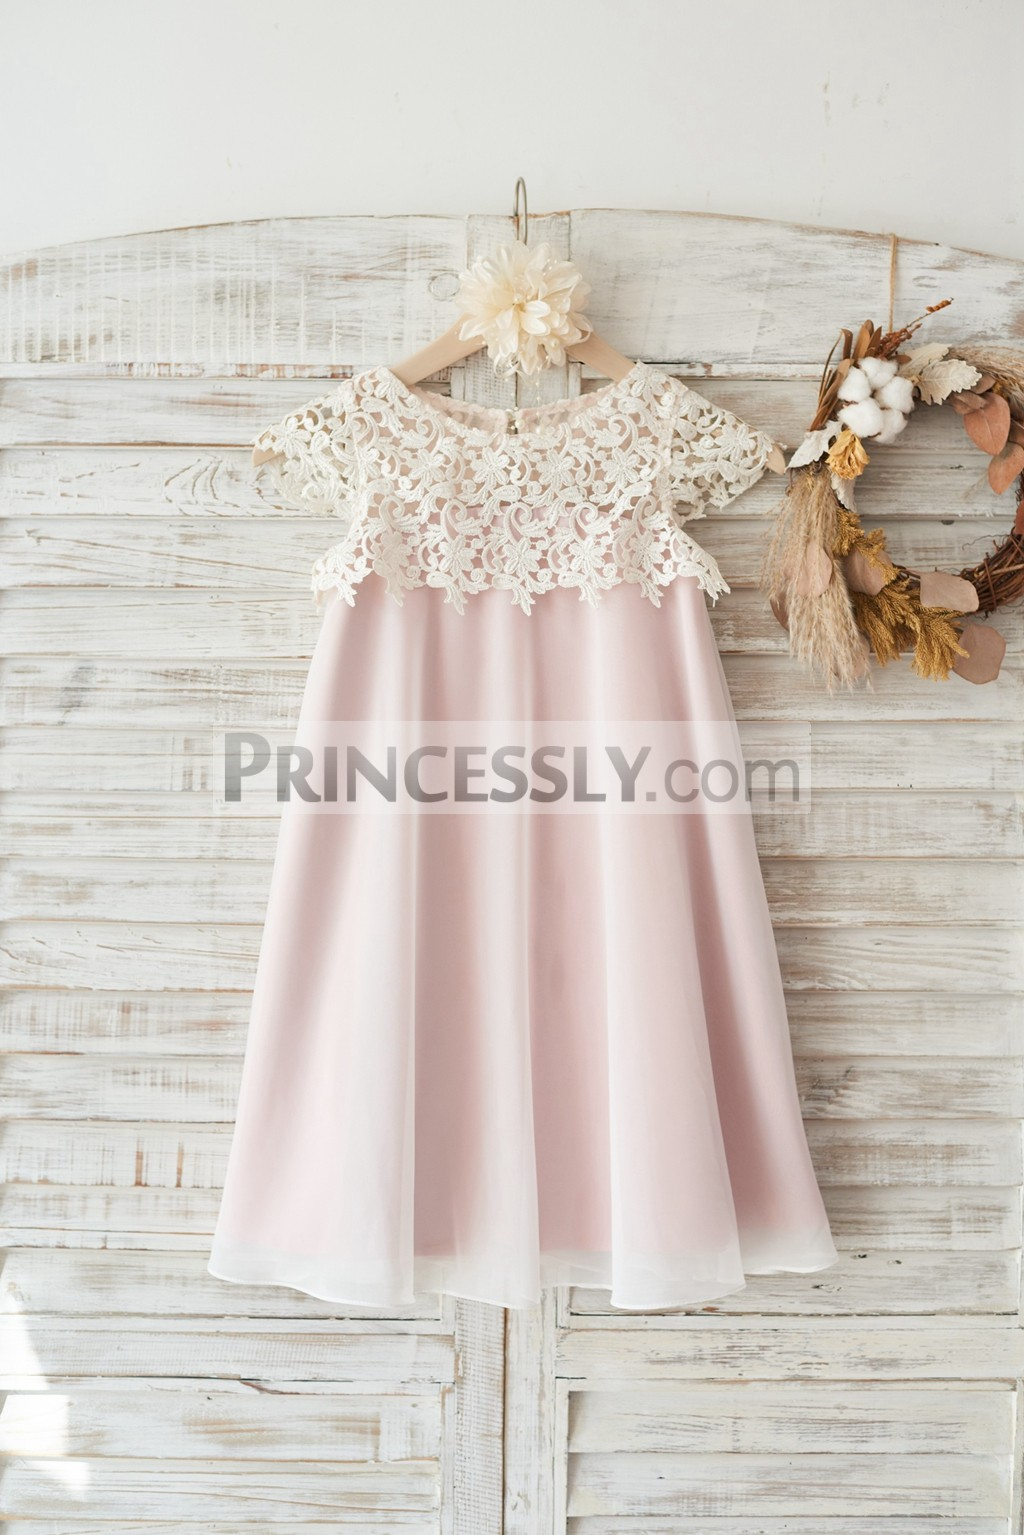 Crochet lace pink lining sheer chiffon boho flower girl dress